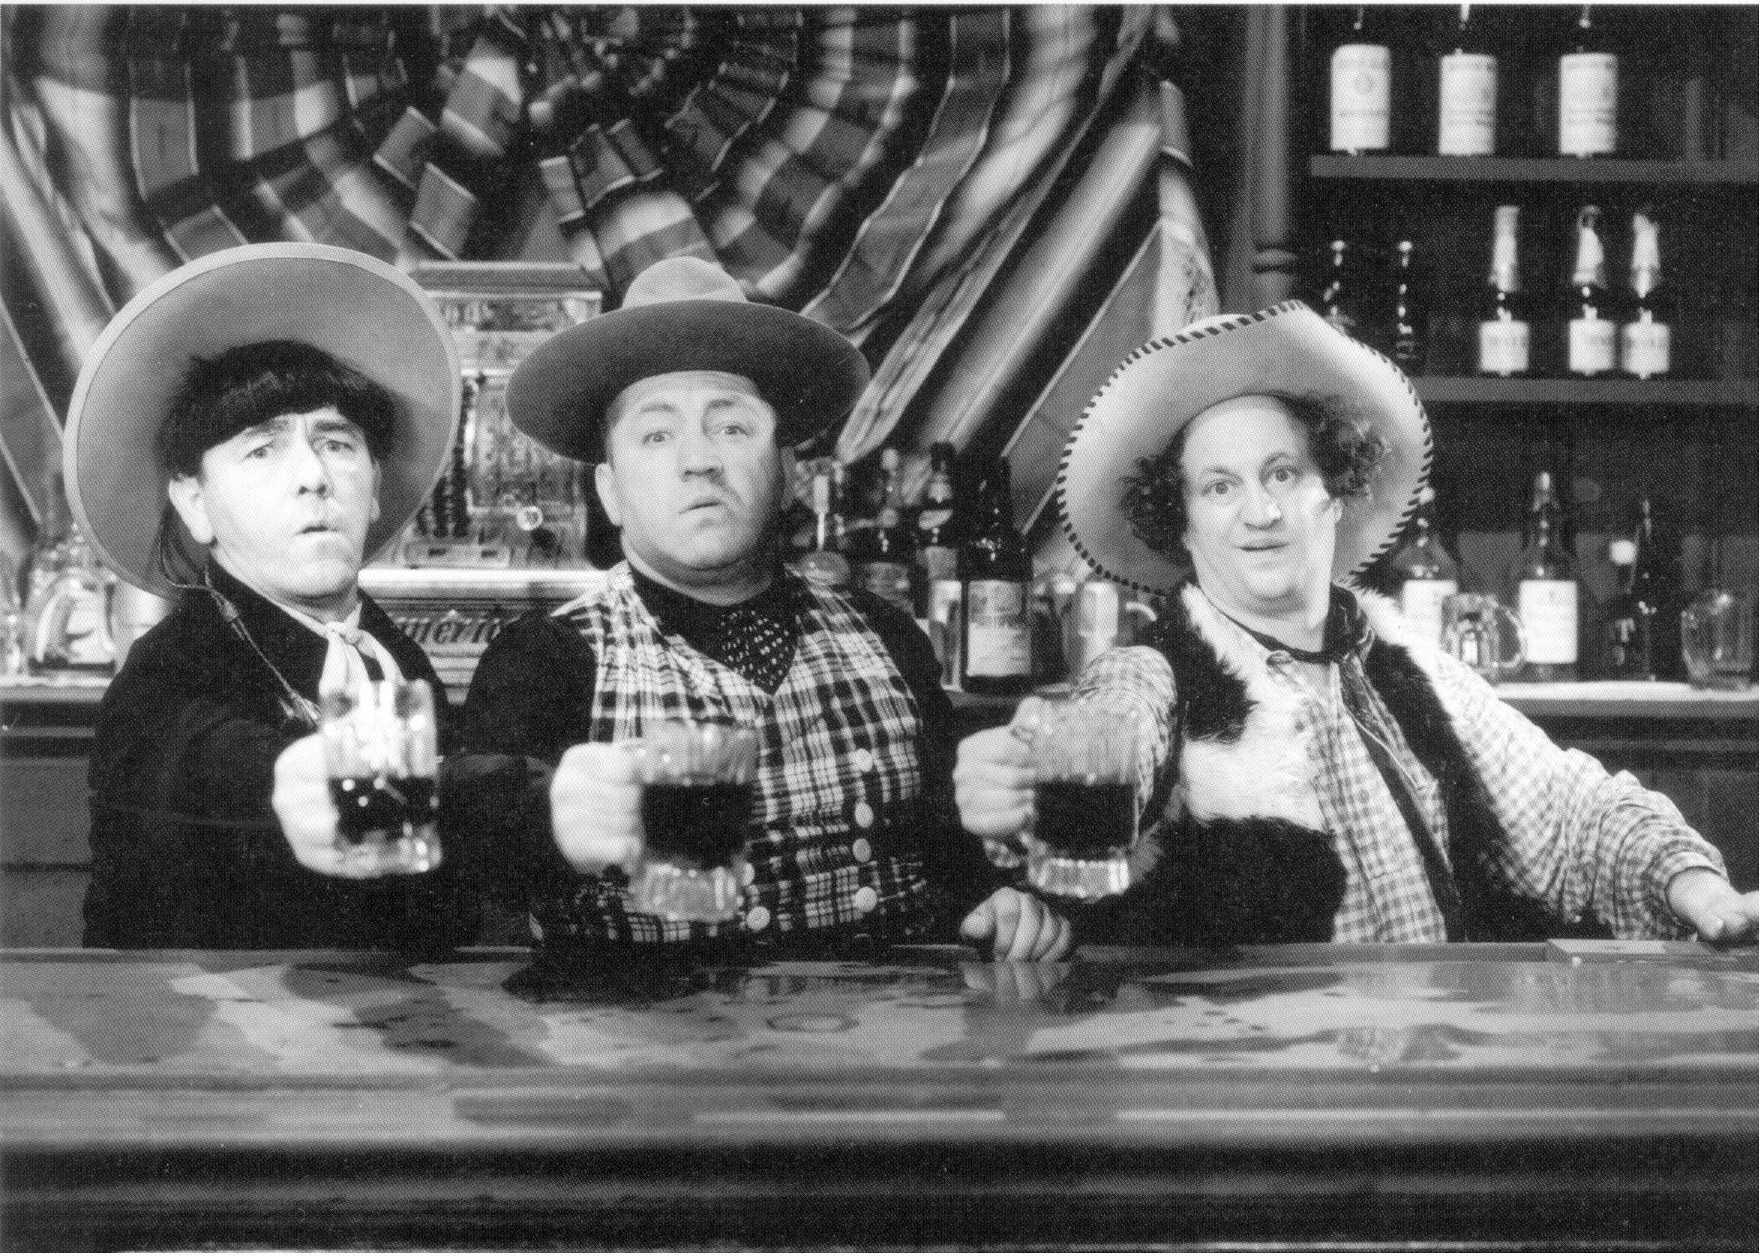 Cinecon 51 Refocuses On Film With Stooges Arbuckle Laurel And Hardy Rarities